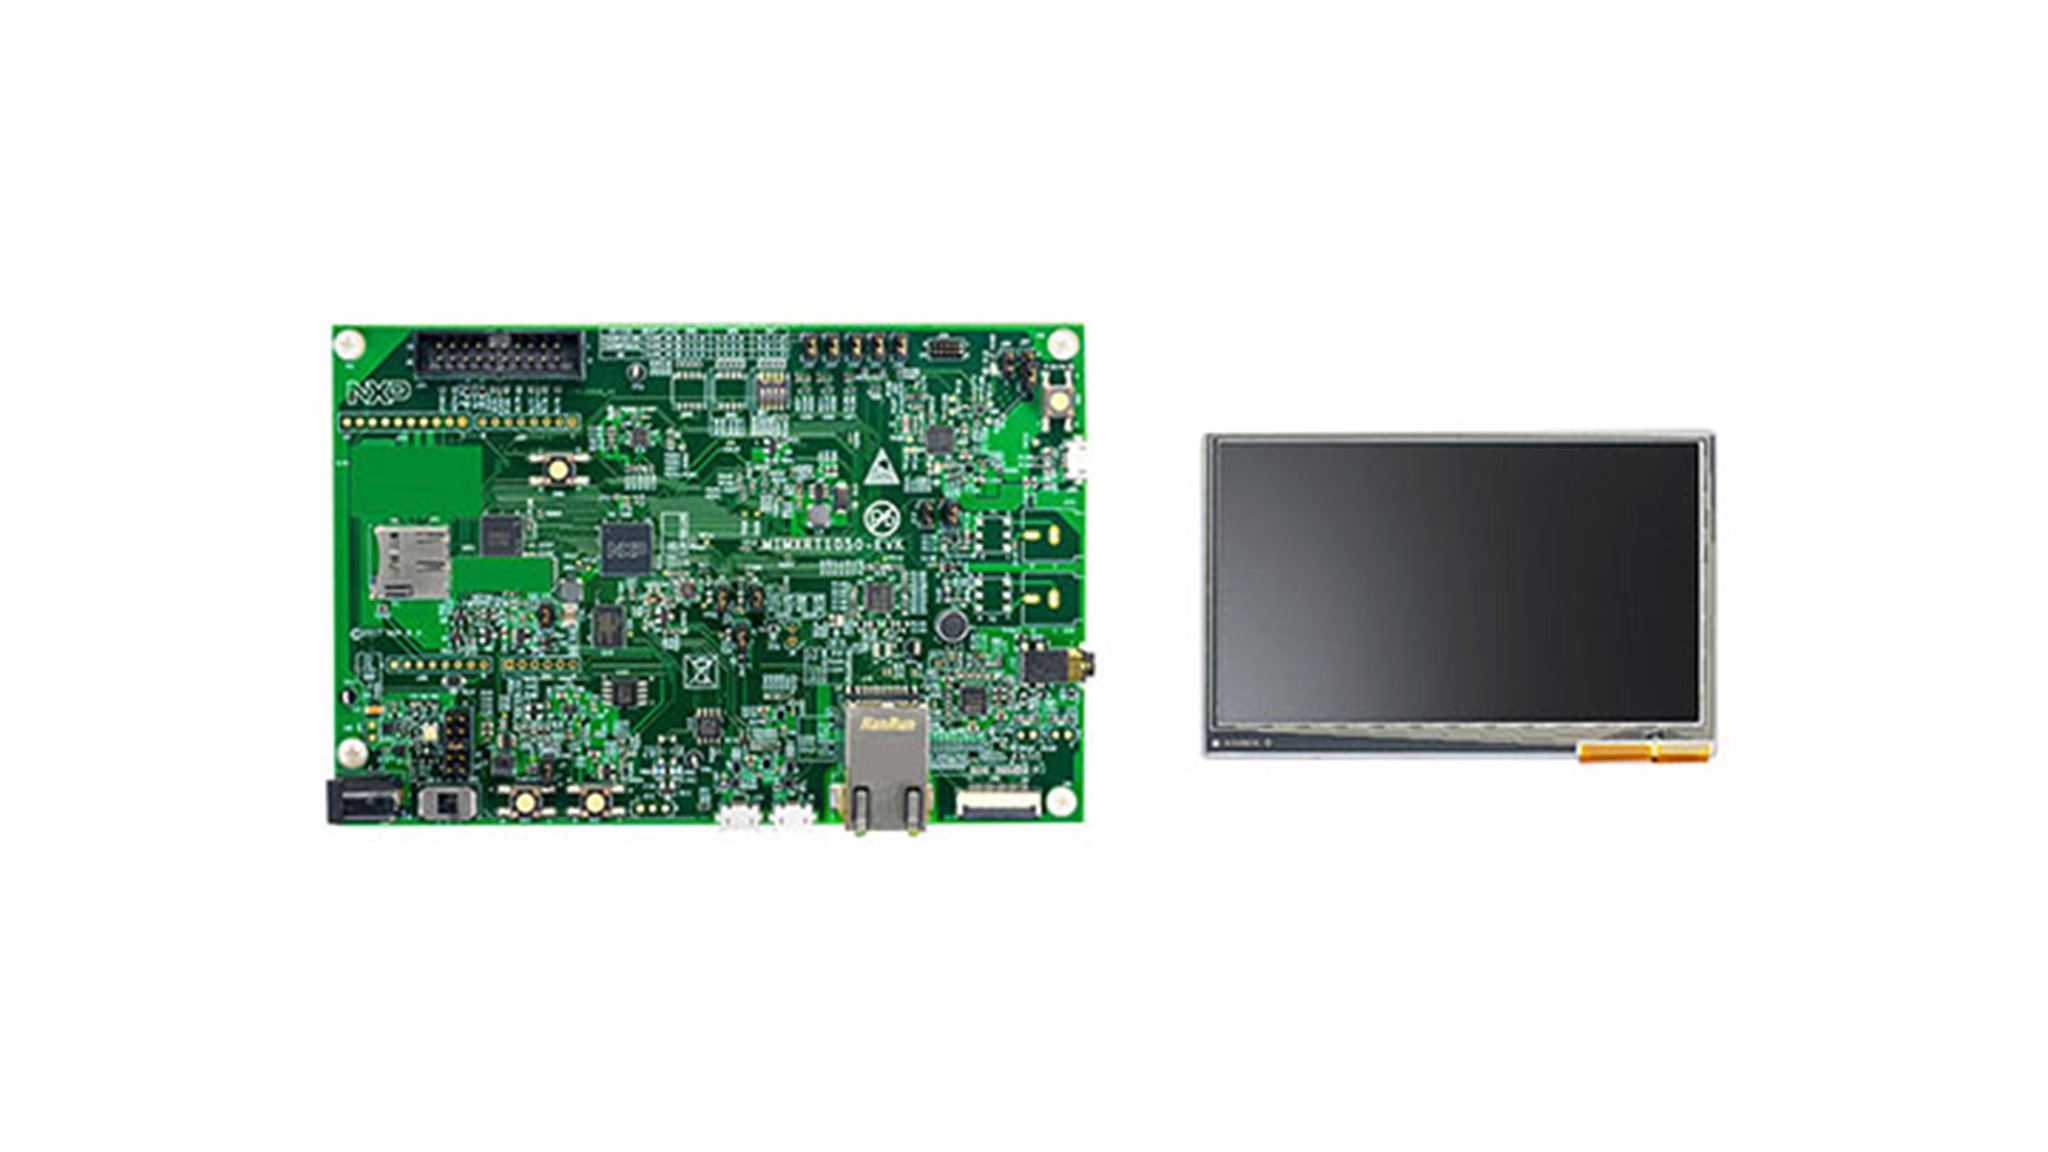 Imx Rt1050 Mcu Applications Crossover Processor Arm Cortex M7 Computer Ram Chips With Binary Code A Circuit Board Memory 43 Lcd Panel Thumbnail